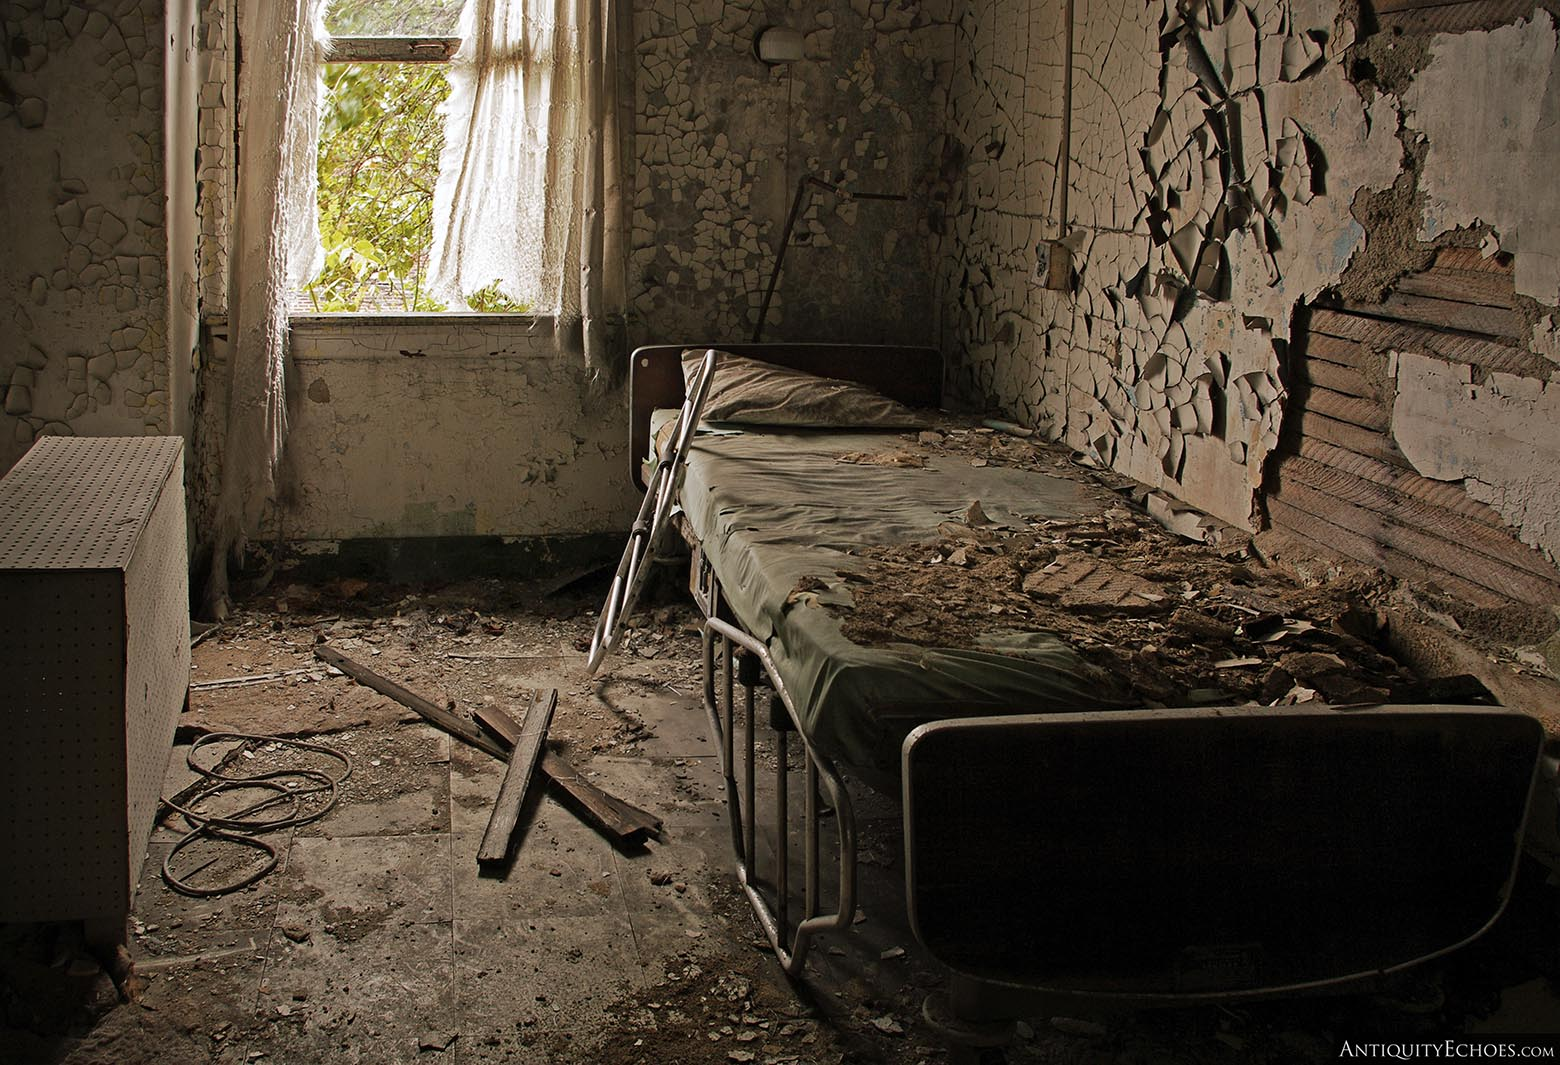 Brownsville General Hospital - Patient Bedroom Covered in Filth